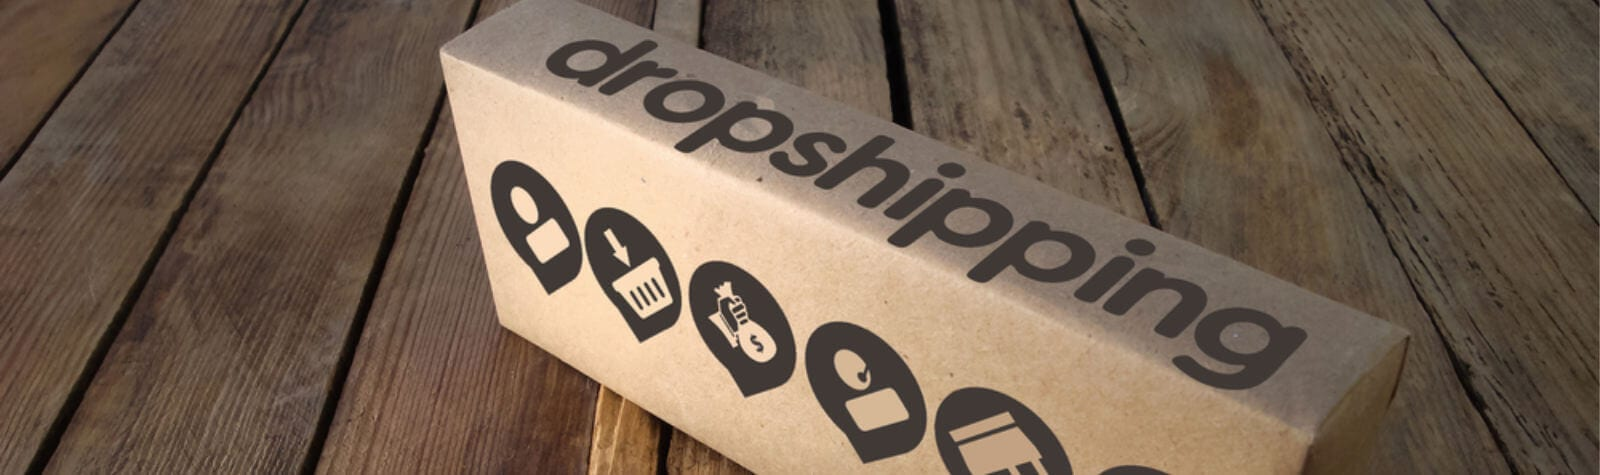 Should You Use Dropshipping For Your e-Commerce Store?